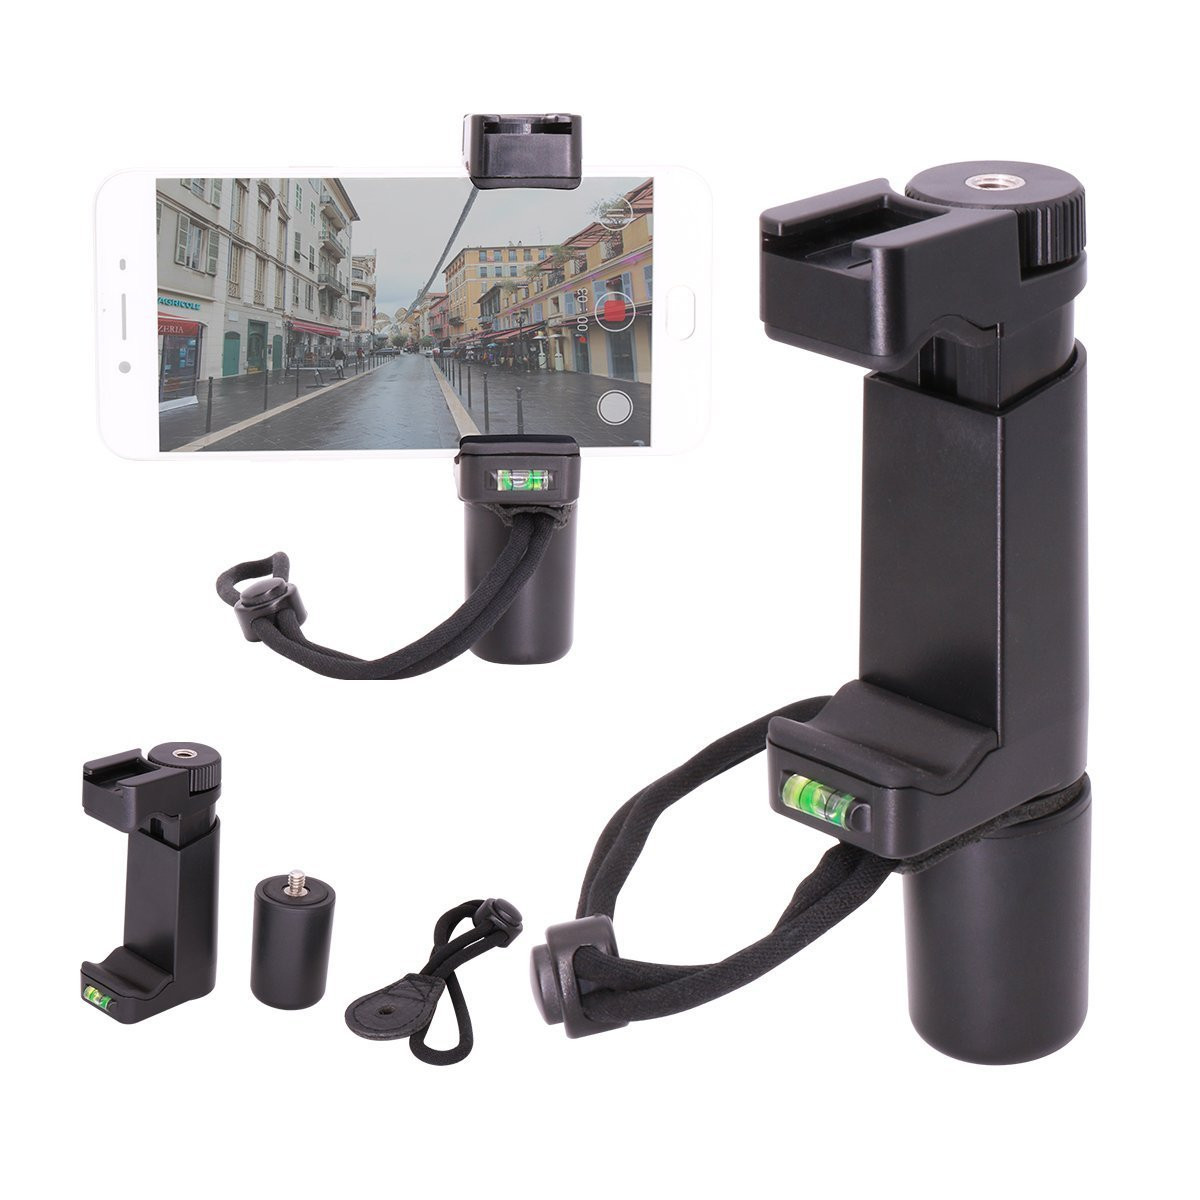 Ulanzi Teléfono Video Estabilizador Teléfono de Mano Smartphone Video Shooting Equipment para LED Video Light Shotgun Microphone Hot Shoe Filming para ...